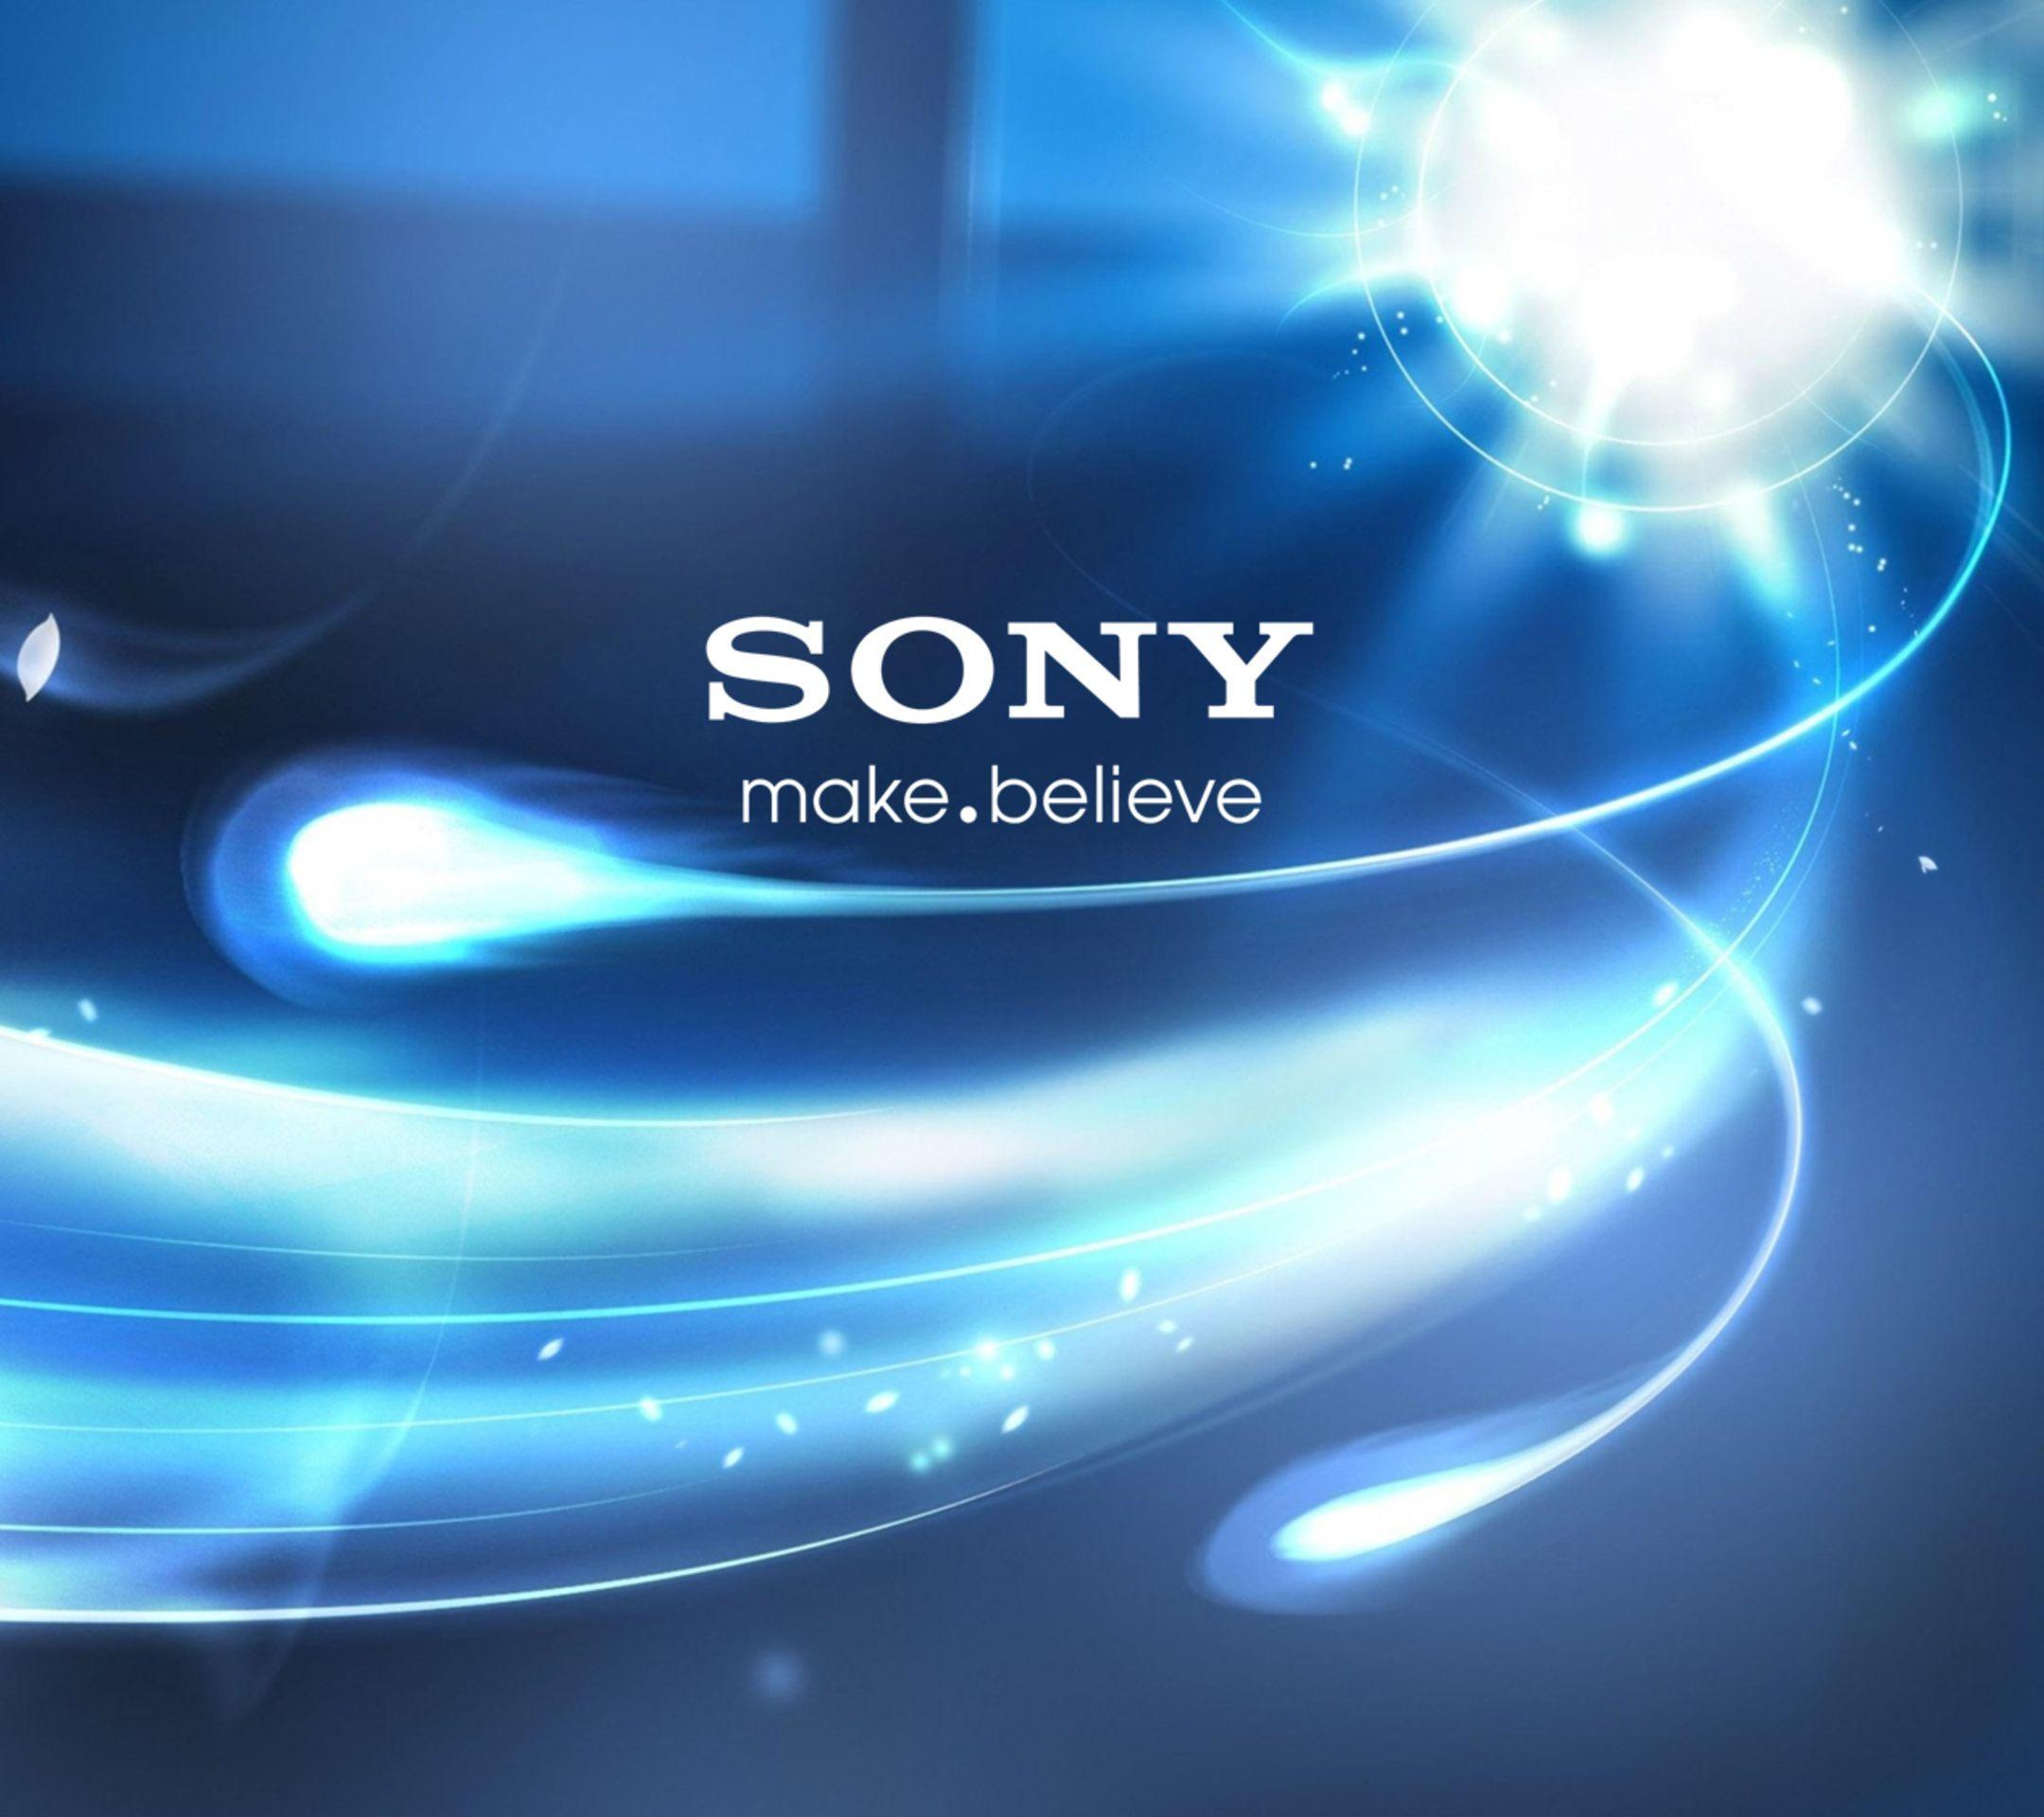 Wallpaper Sony Xperia Page 1